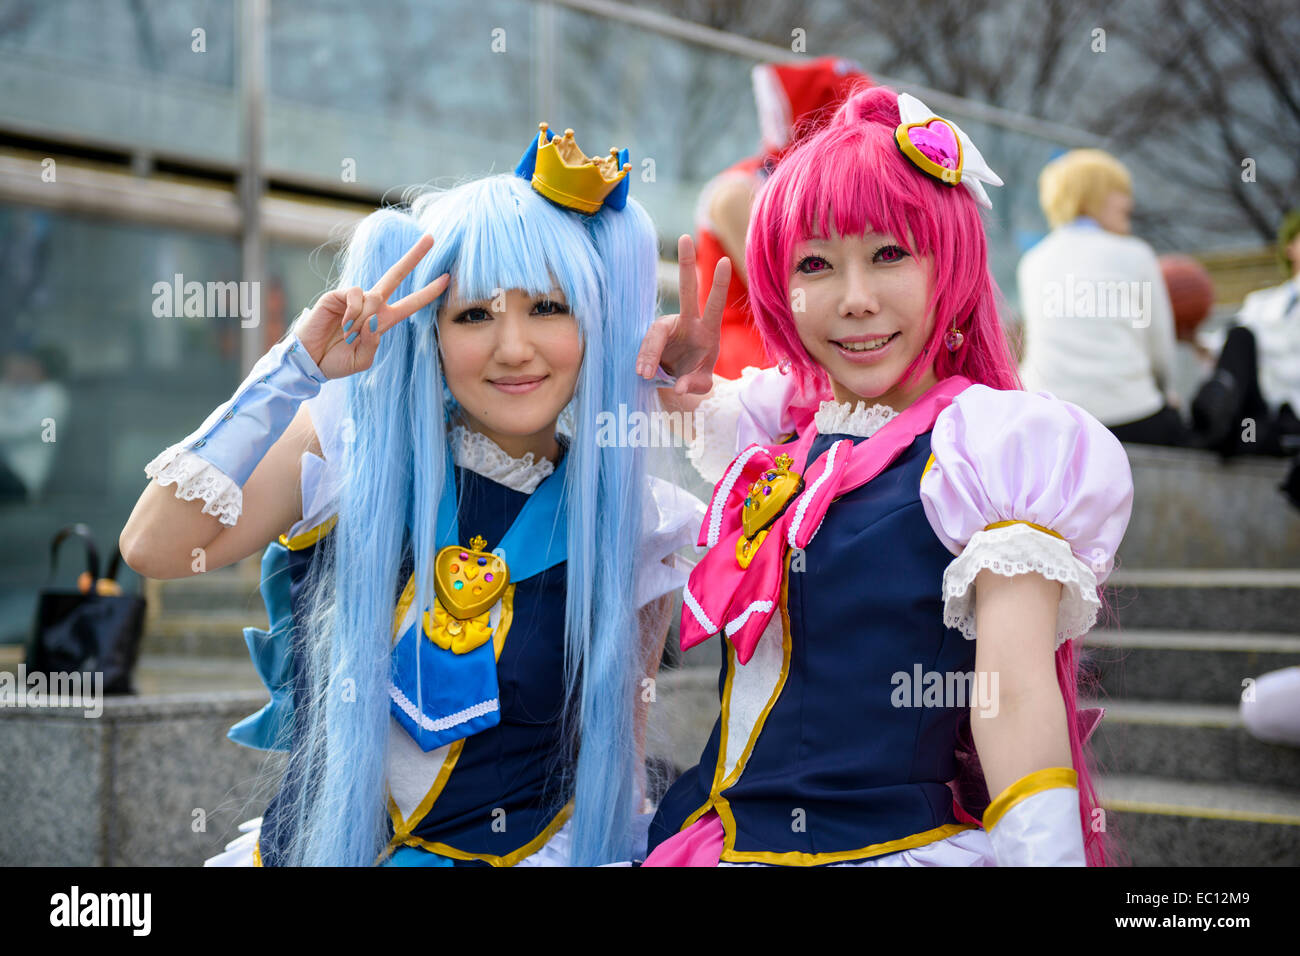 Girls Dressed As Anime Characters Pose At A Cosplay Gathering Stock